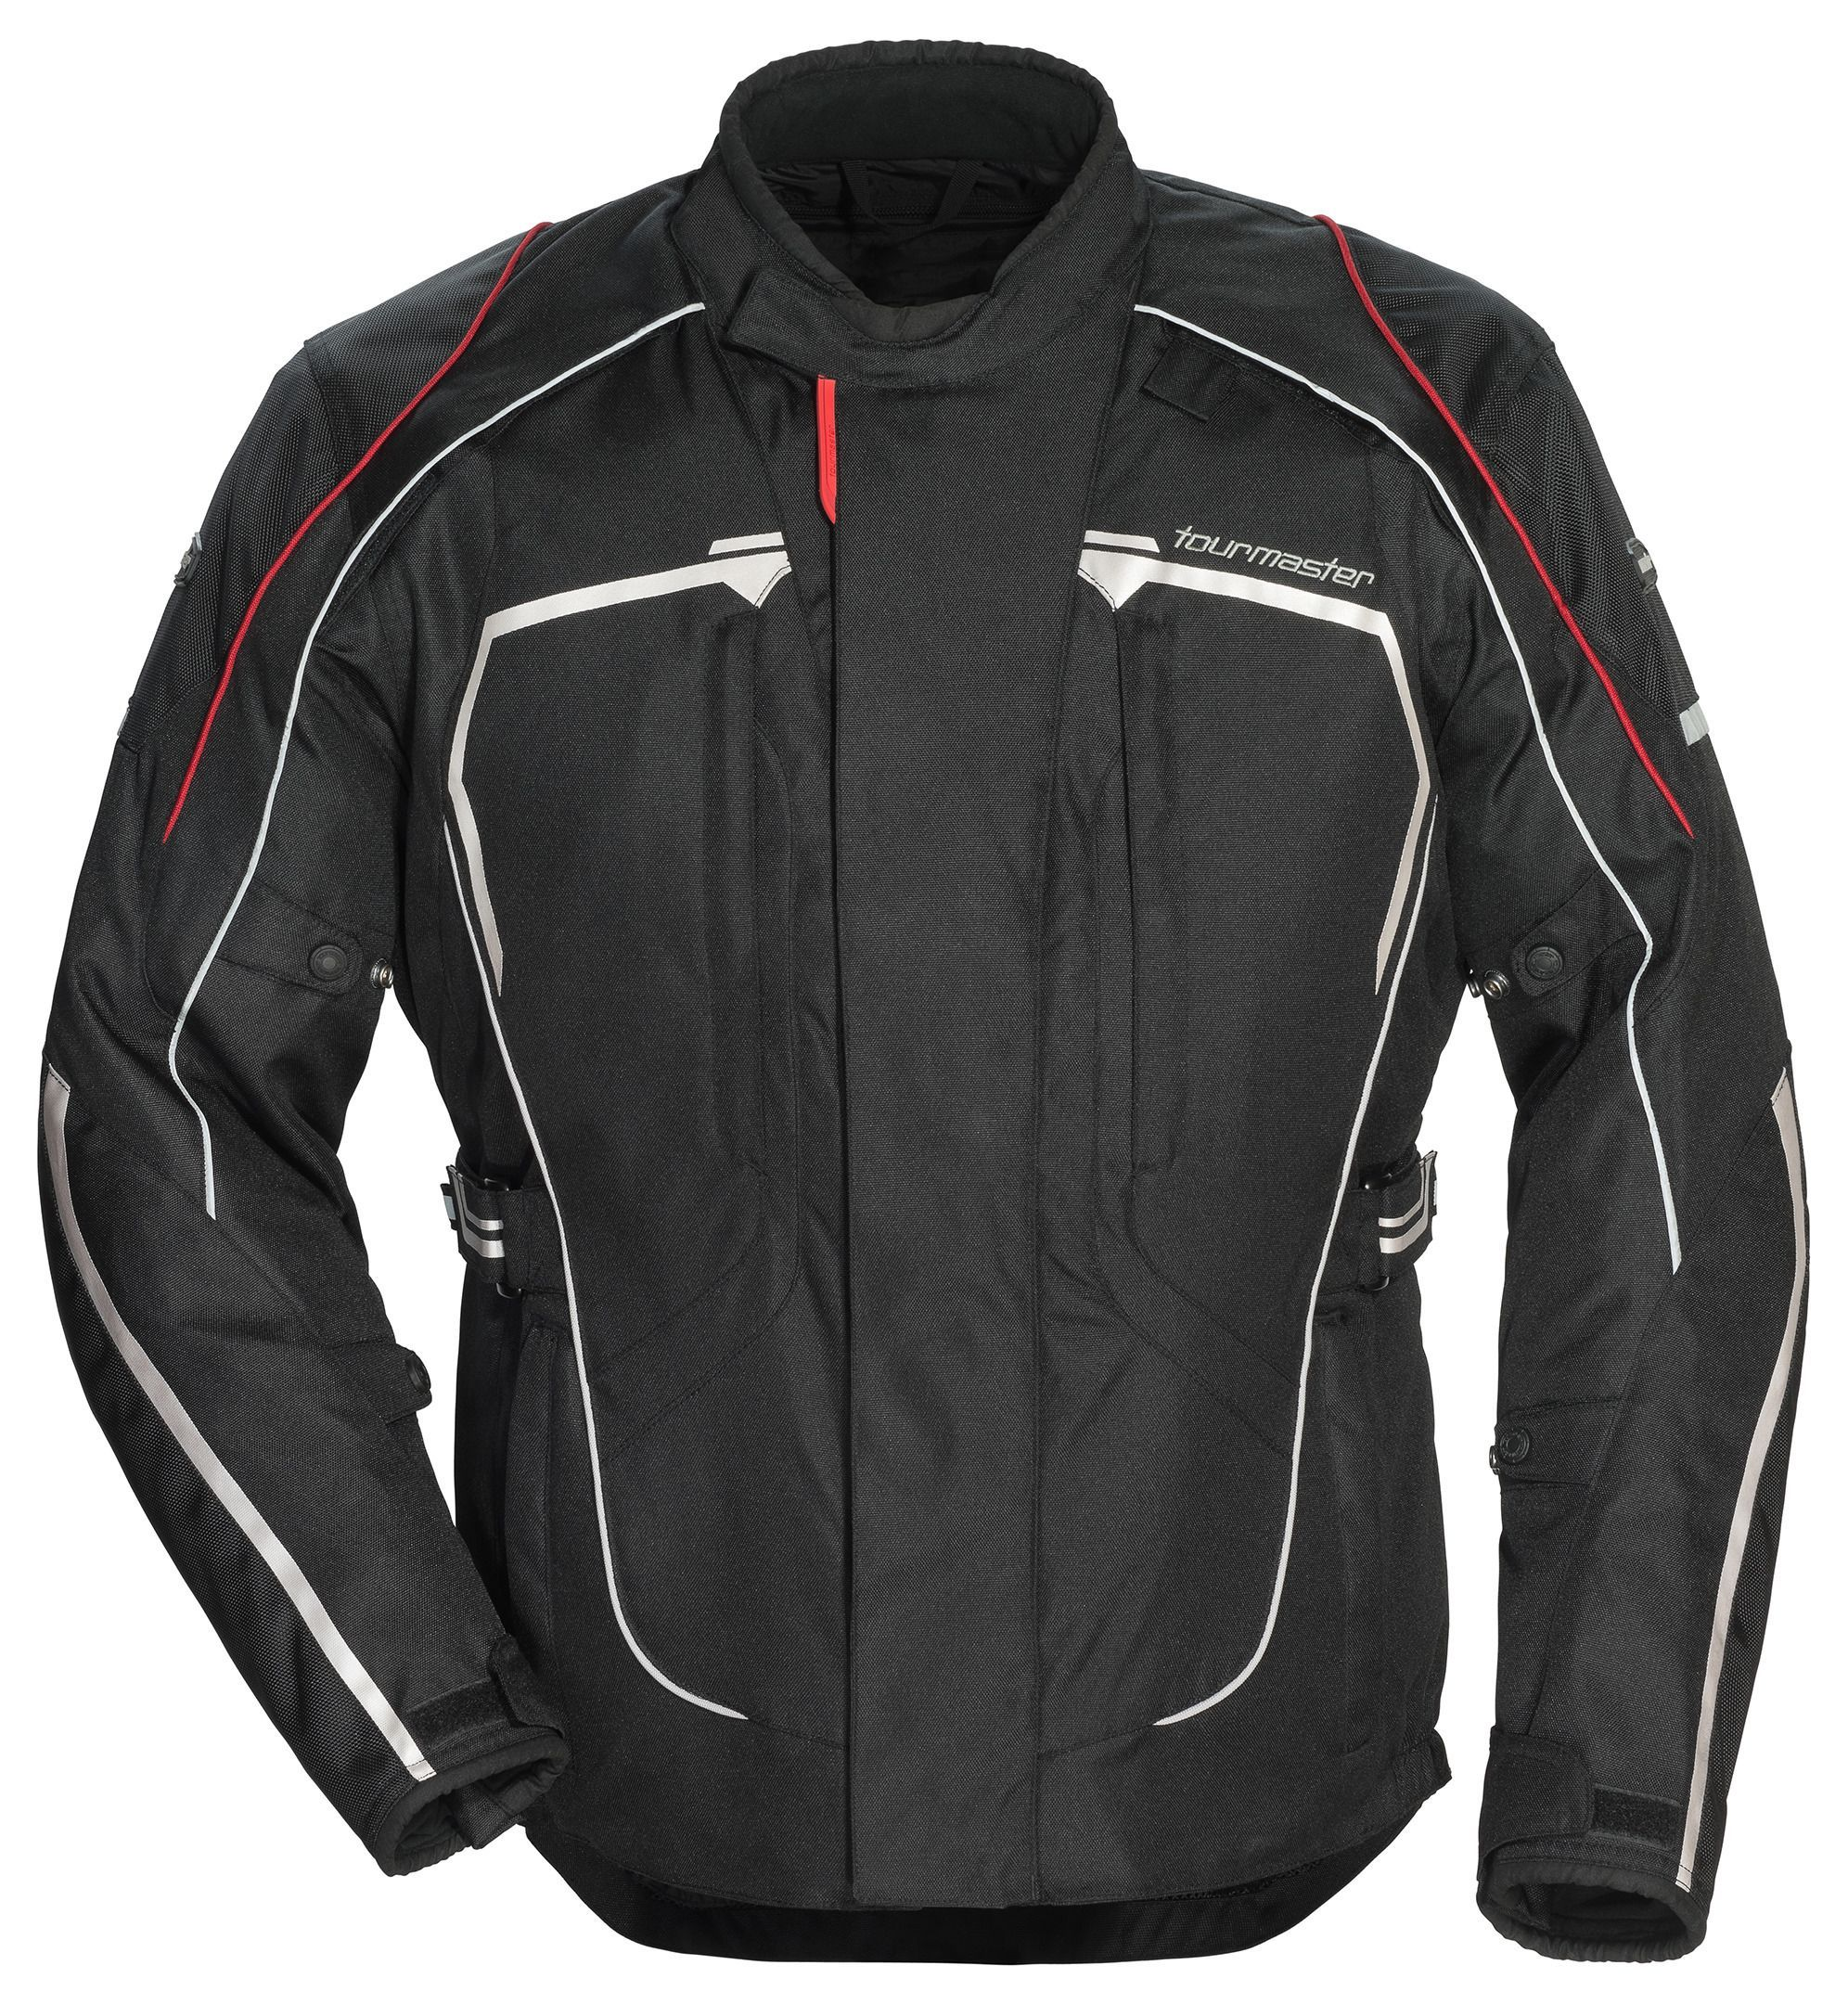 Tour Master Advanced Jacket (With images) Jackets